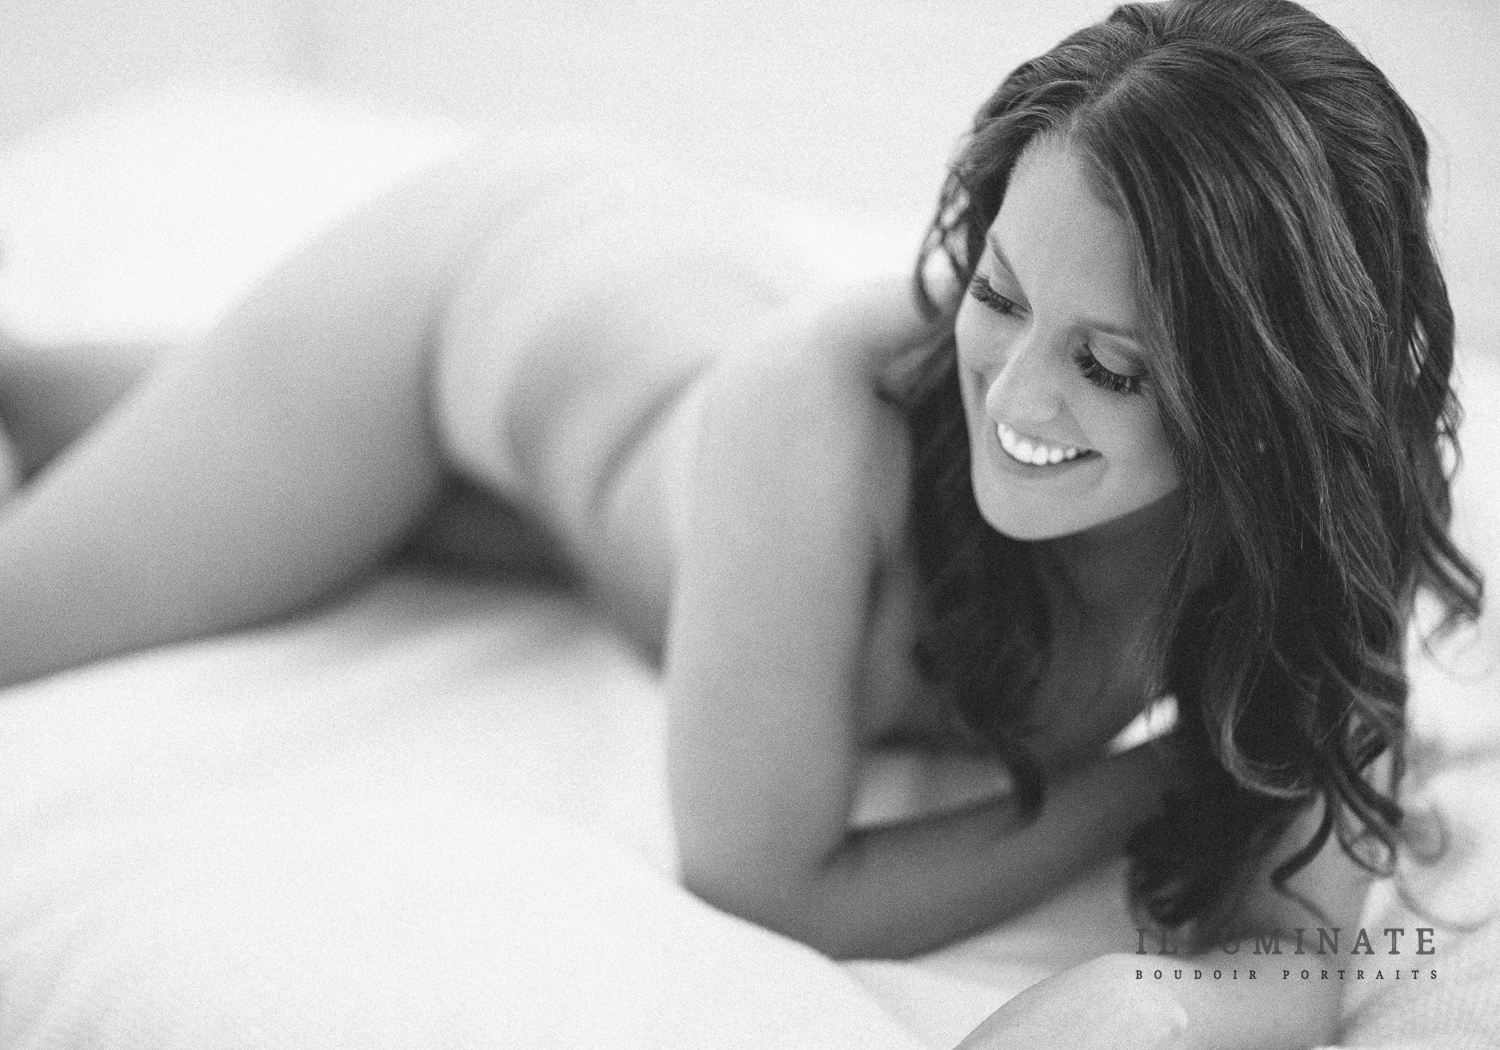 Black and white boudoir photo